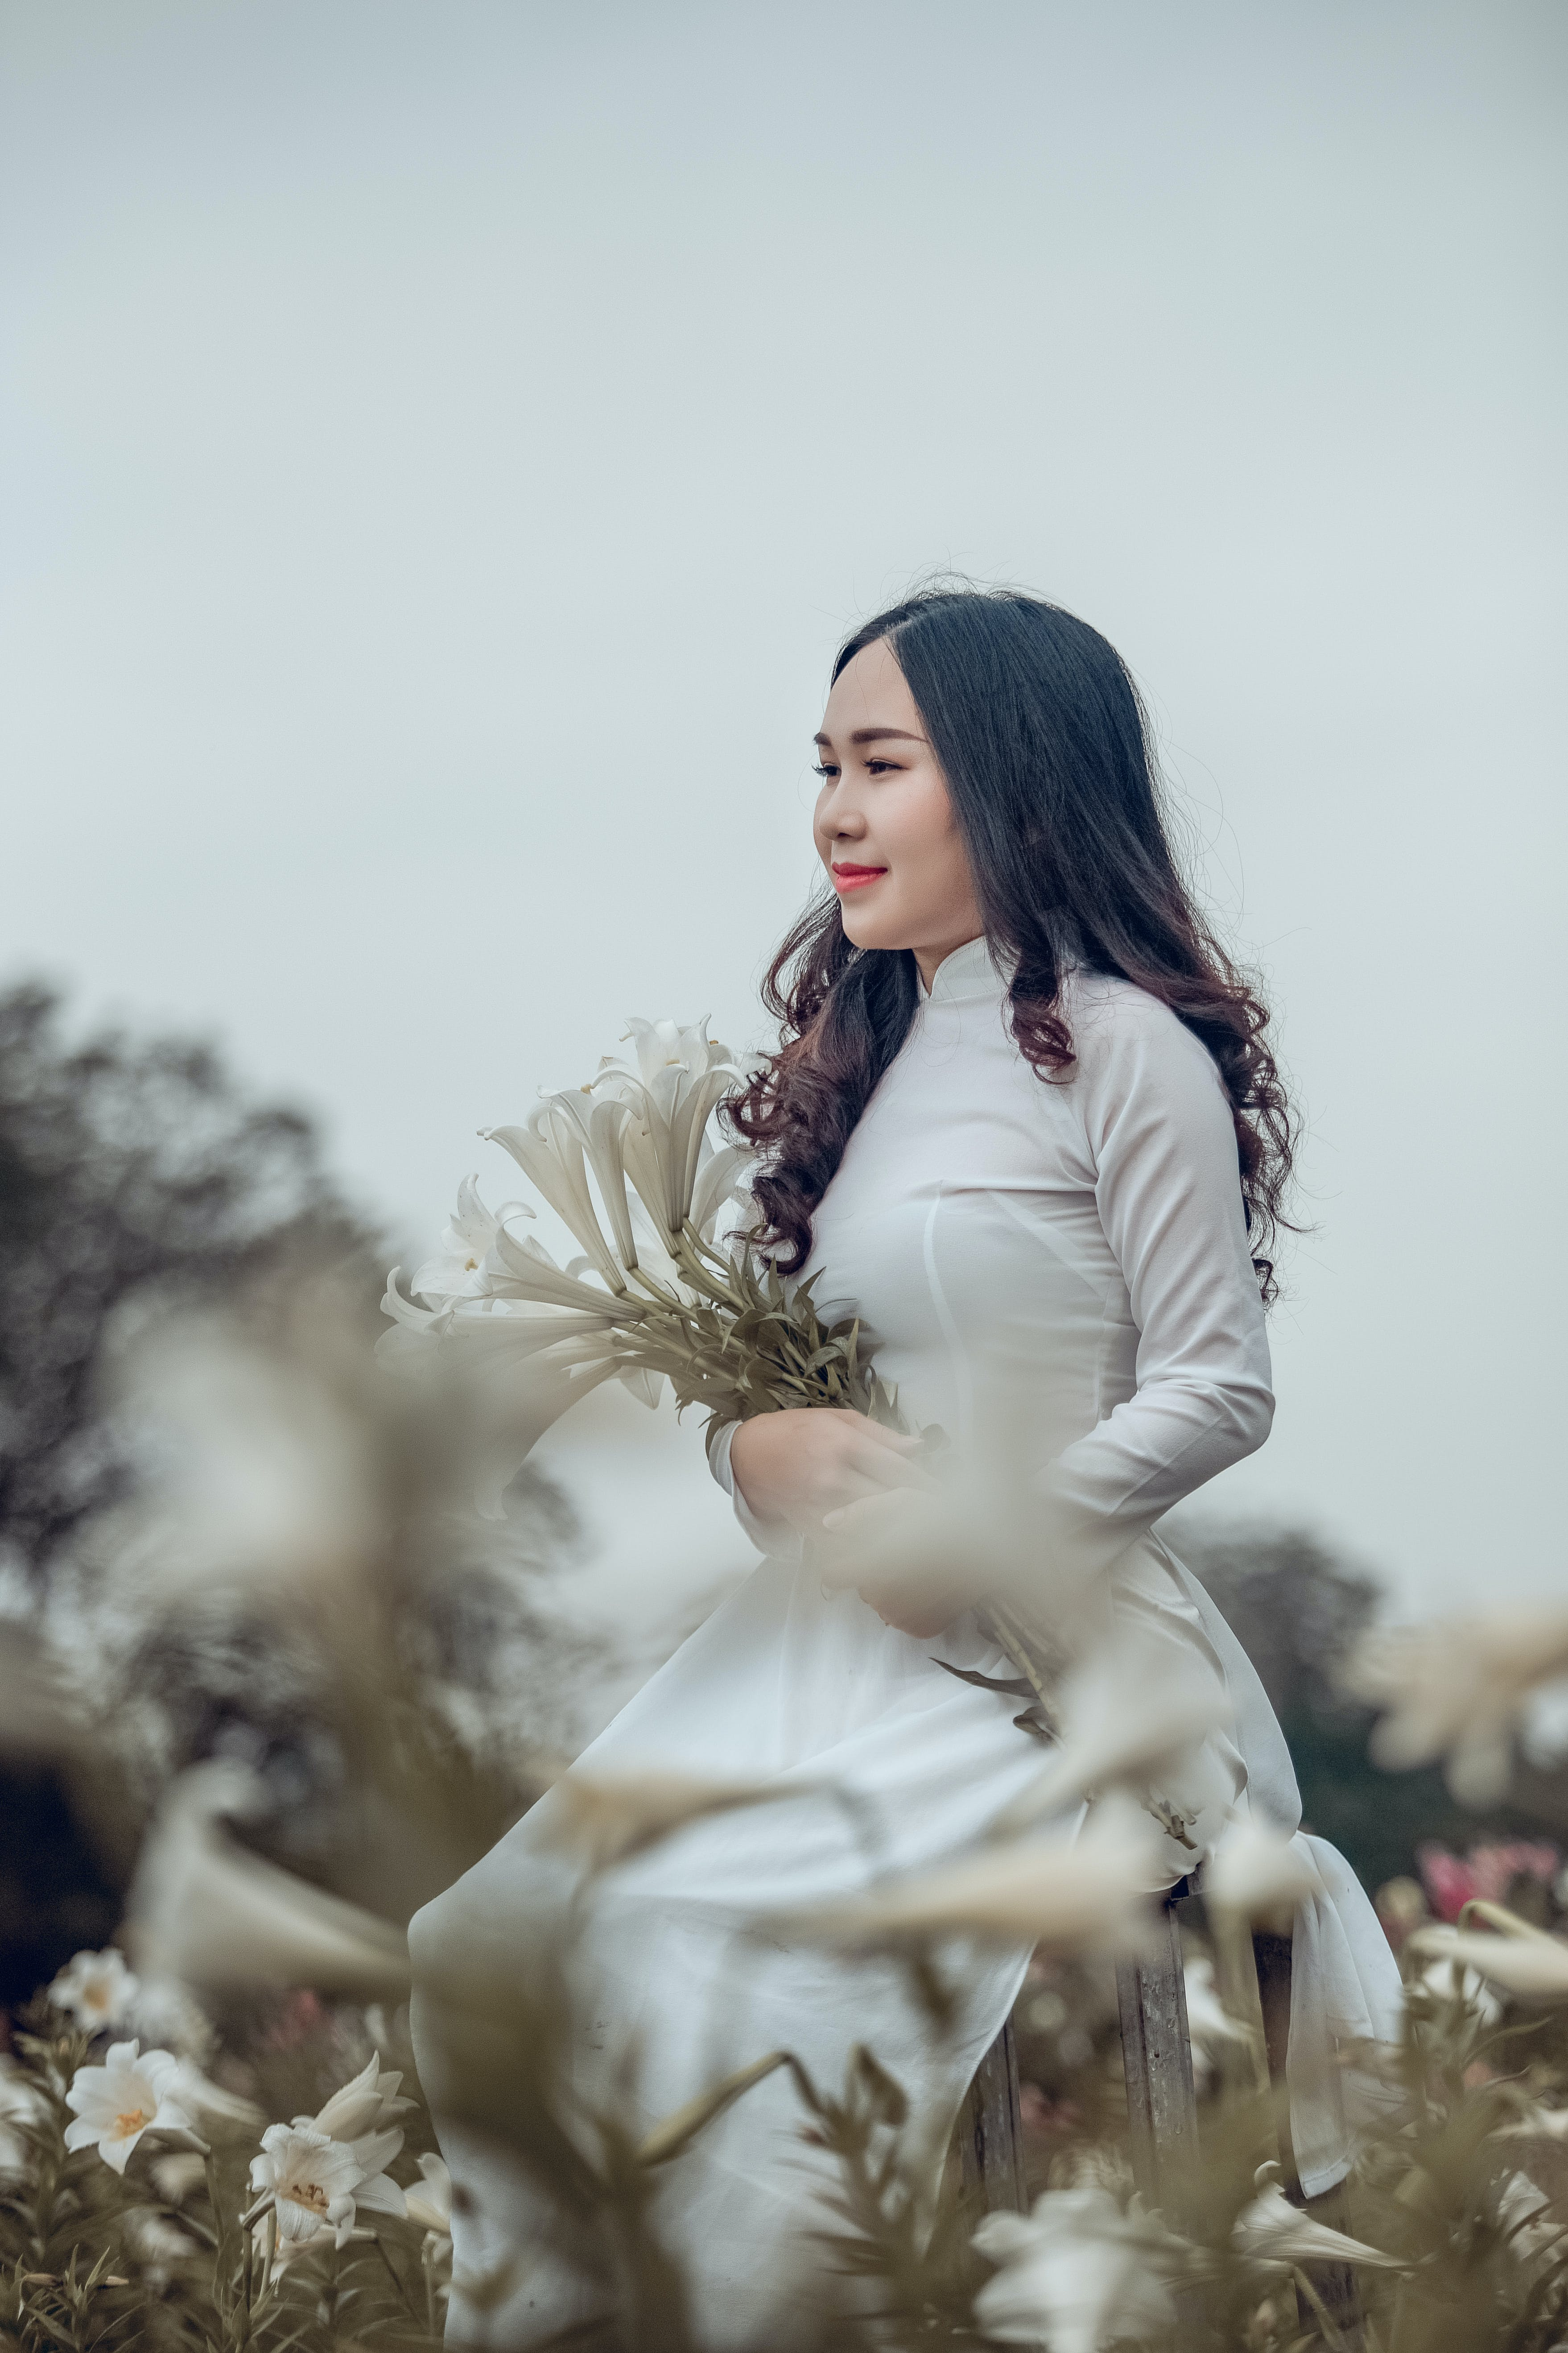 Woman Wearing White Turtleneck Long-sleeved Dress Holding Withe Petaled Flowers